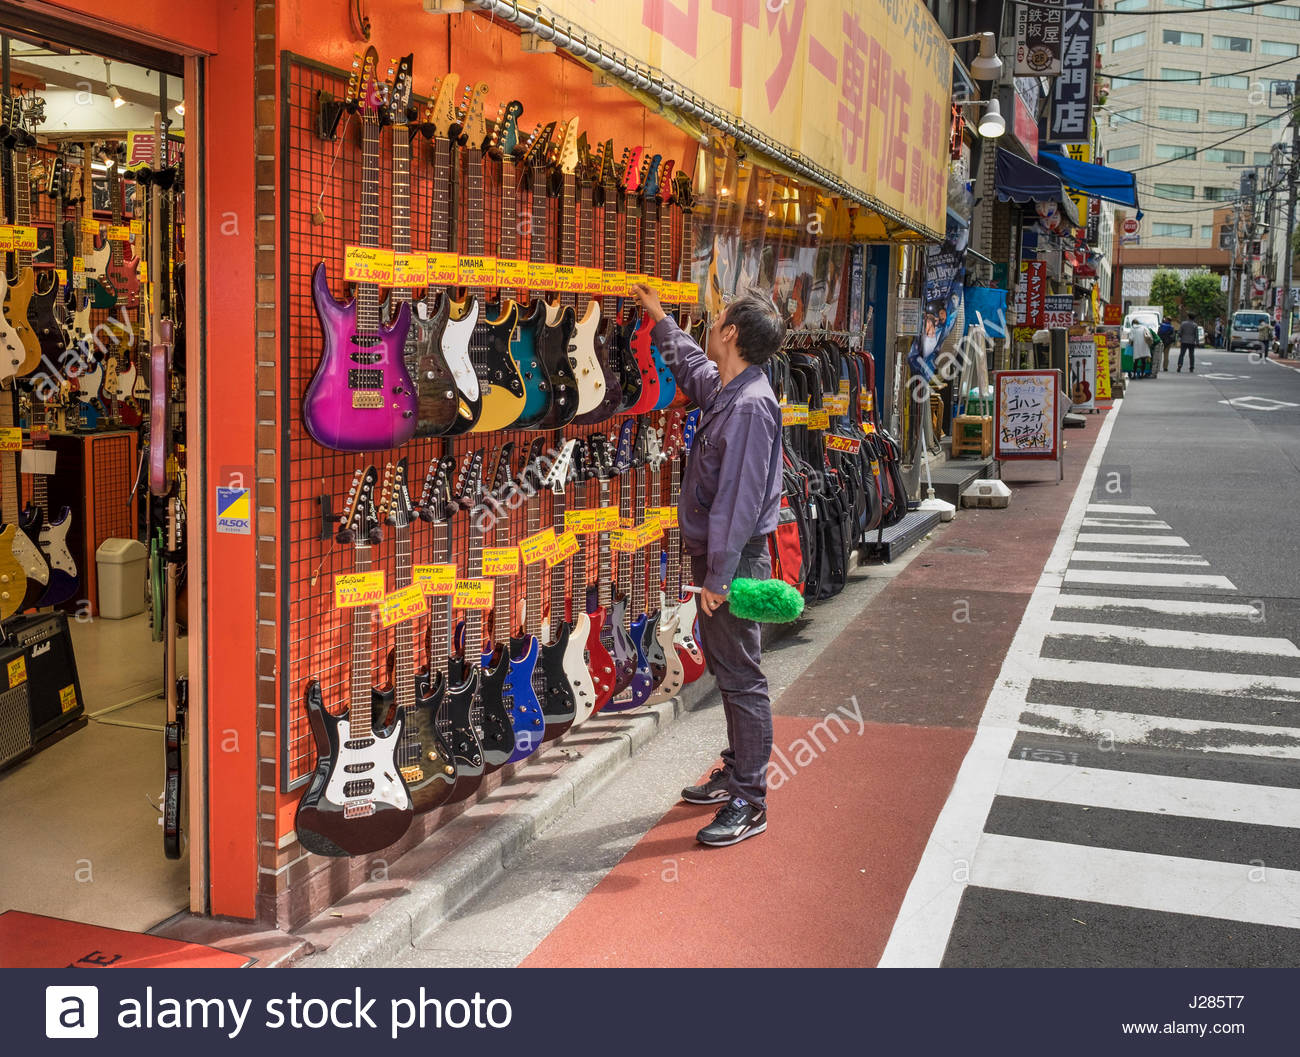 Man Adjusting Price Tags On Electric Guitars Display Outside Music Shop Off Meidai Dori Knows As Guitar Street A Musical Instrument Shopping Stre